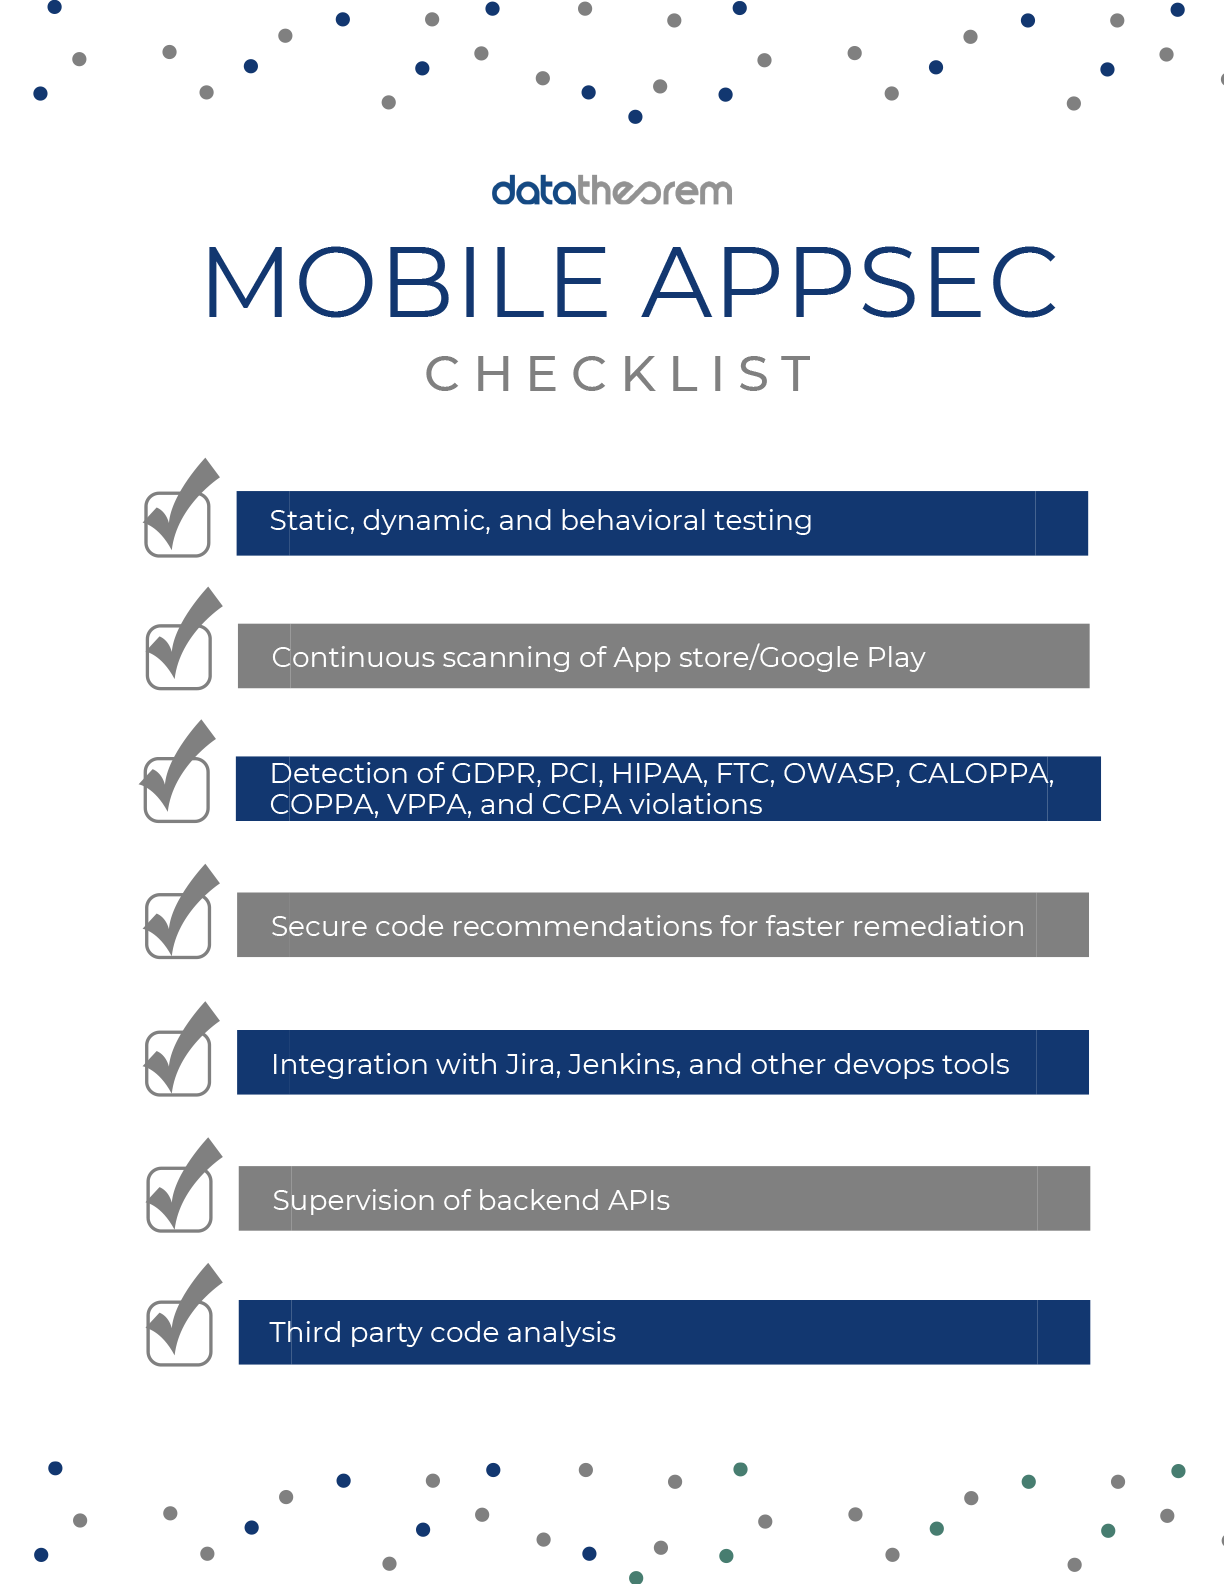 infographic-mobile-appsec-checklist